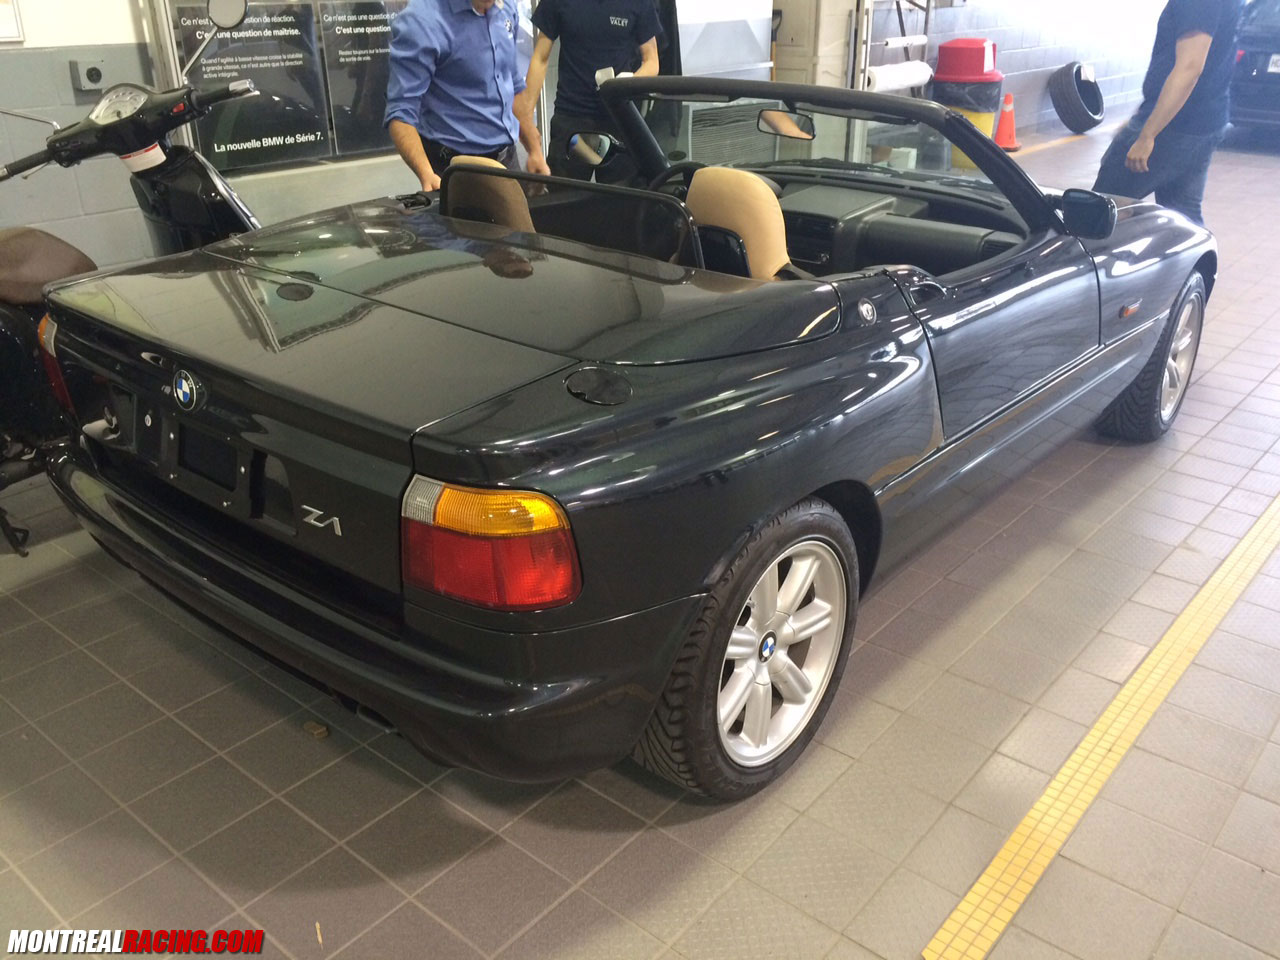 bmw z1 for sale in usa bmw z1 for sale rightdrive usa bmw z1 1990 convertible for sale bmw z1. Black Bedroom Furniture Sets. Home Design Ideas